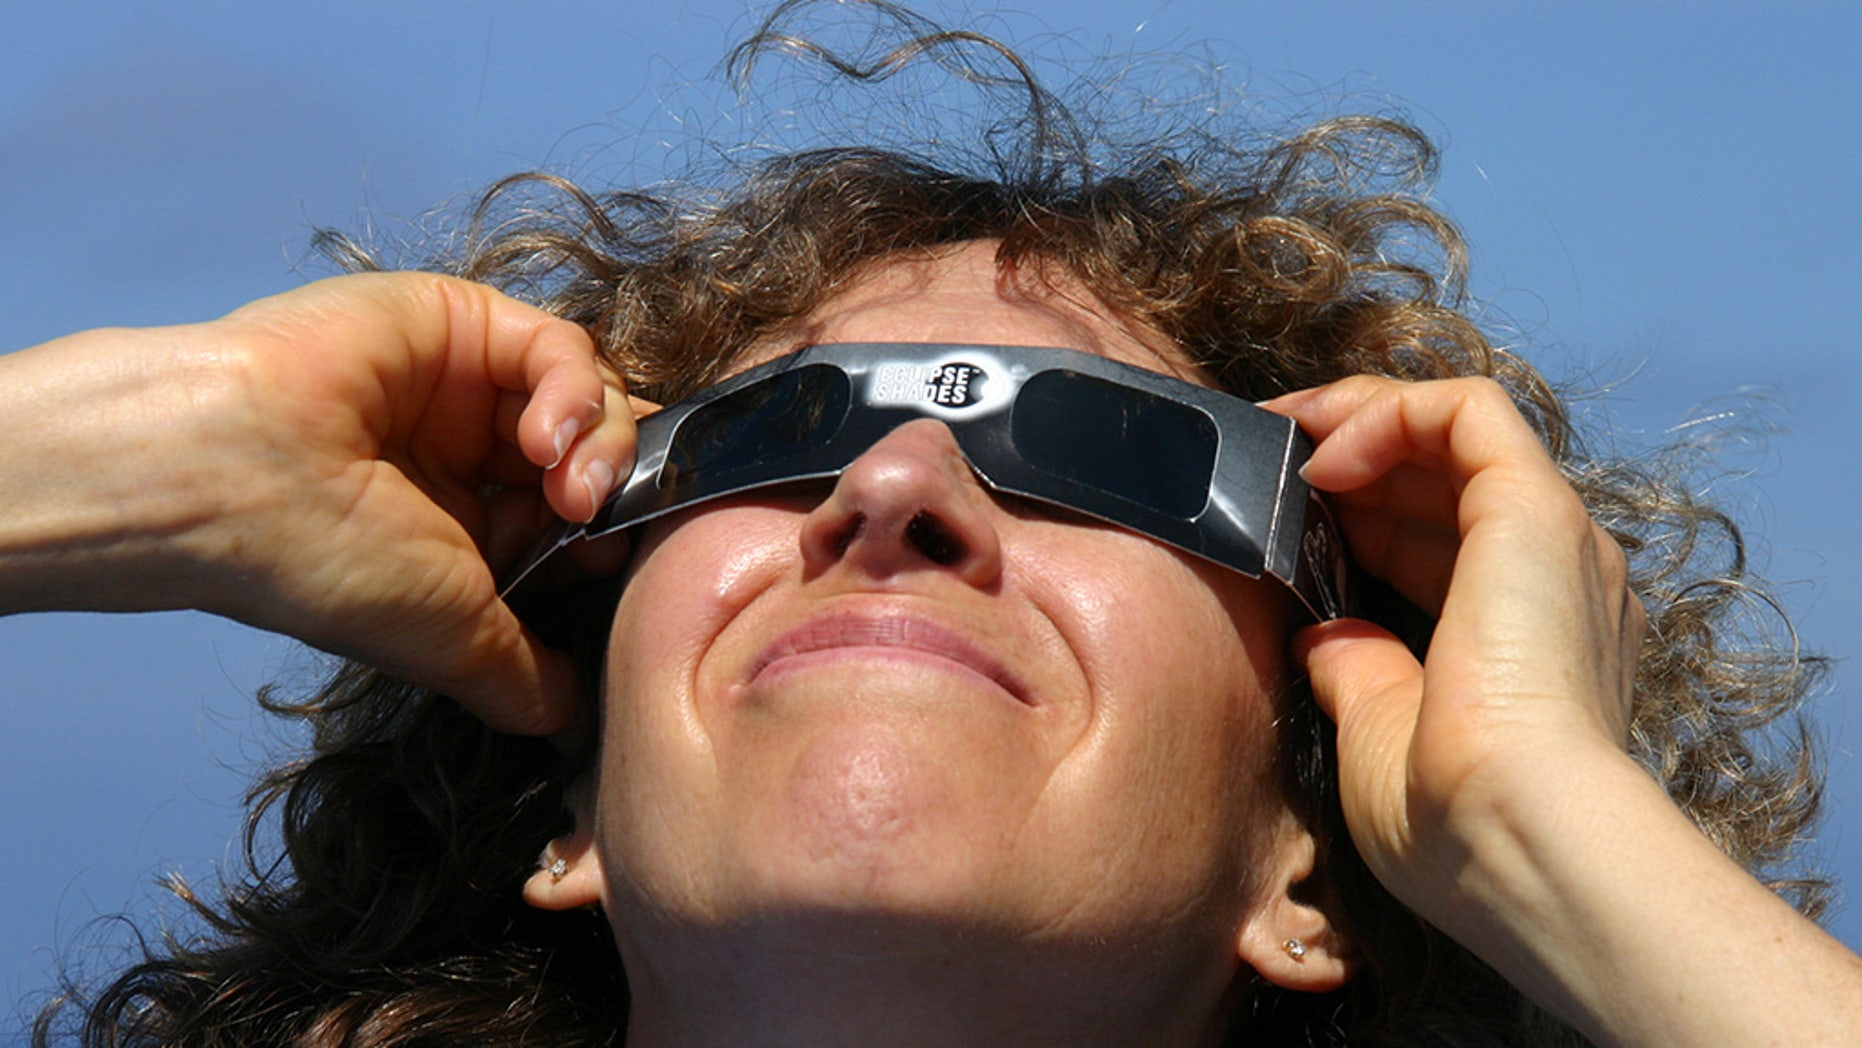 The American Astronomical Society released additional guidelines on how to make sure your eclipse glasses or viewers are safe to use.